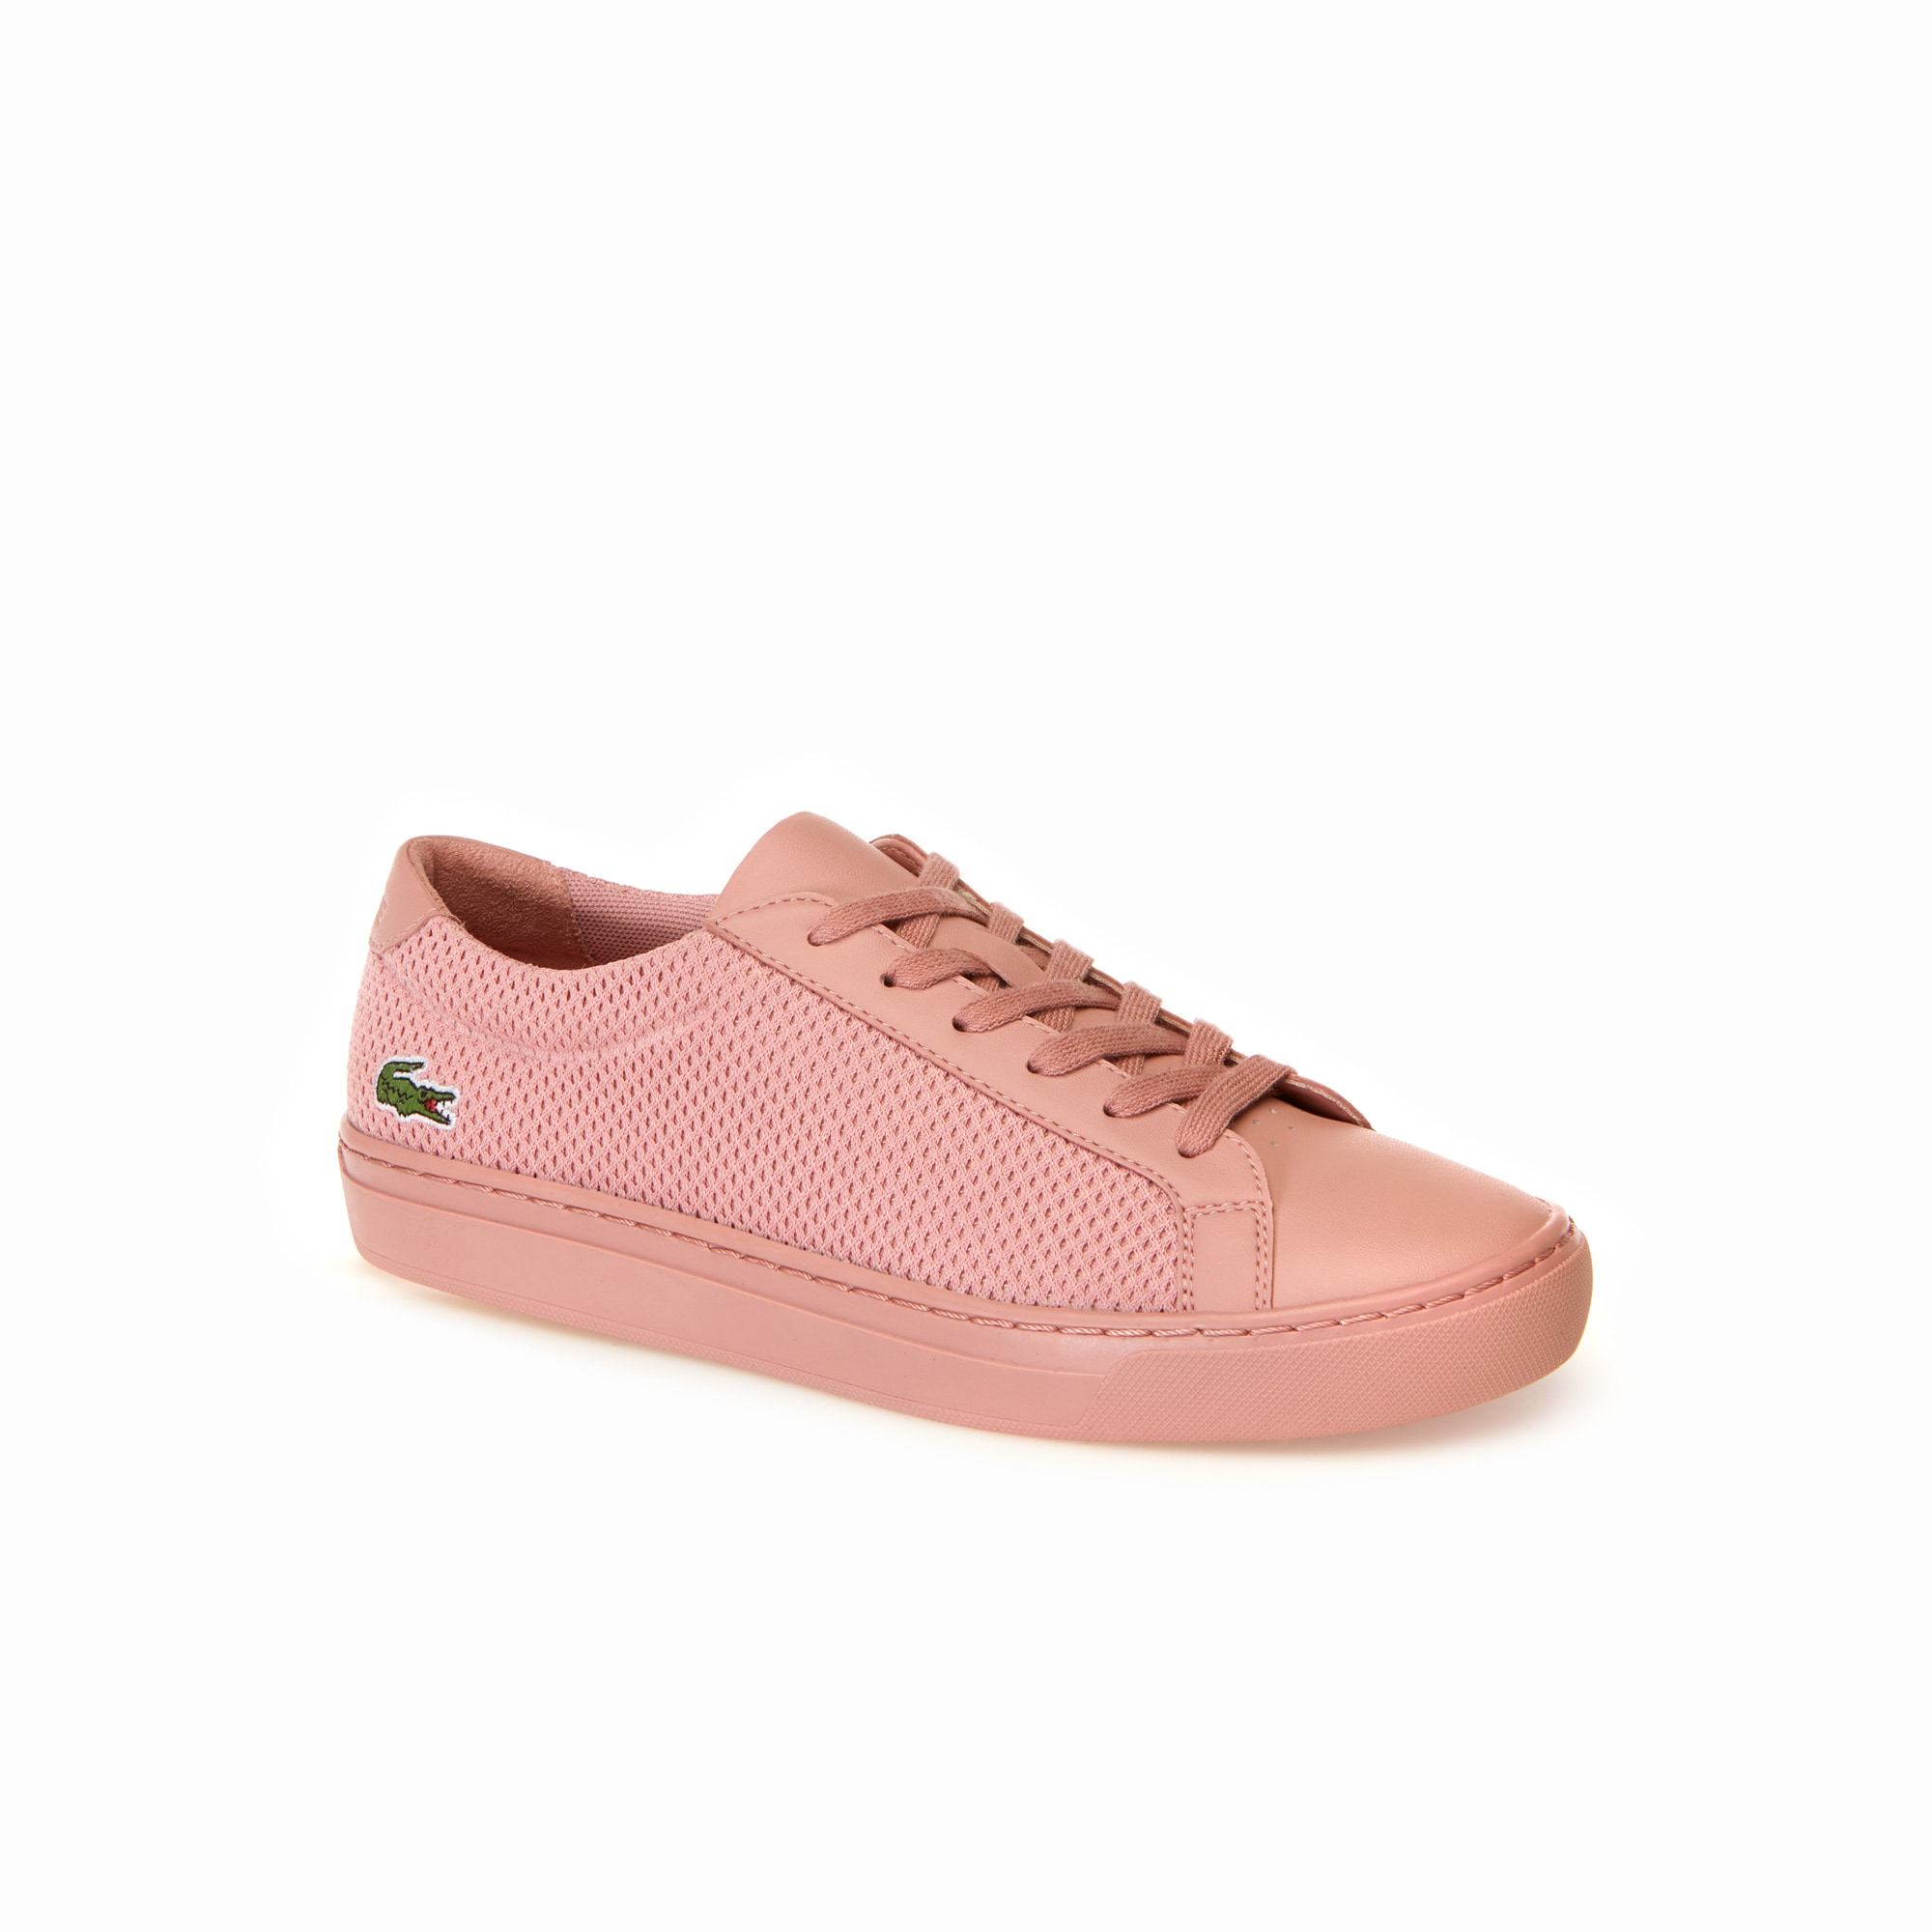 48464b64beb4b7 Women s L.12.12 Light-WT Textile and Leather Trainers ·  PLP Content Star Product SS19 Footwear Pique Women